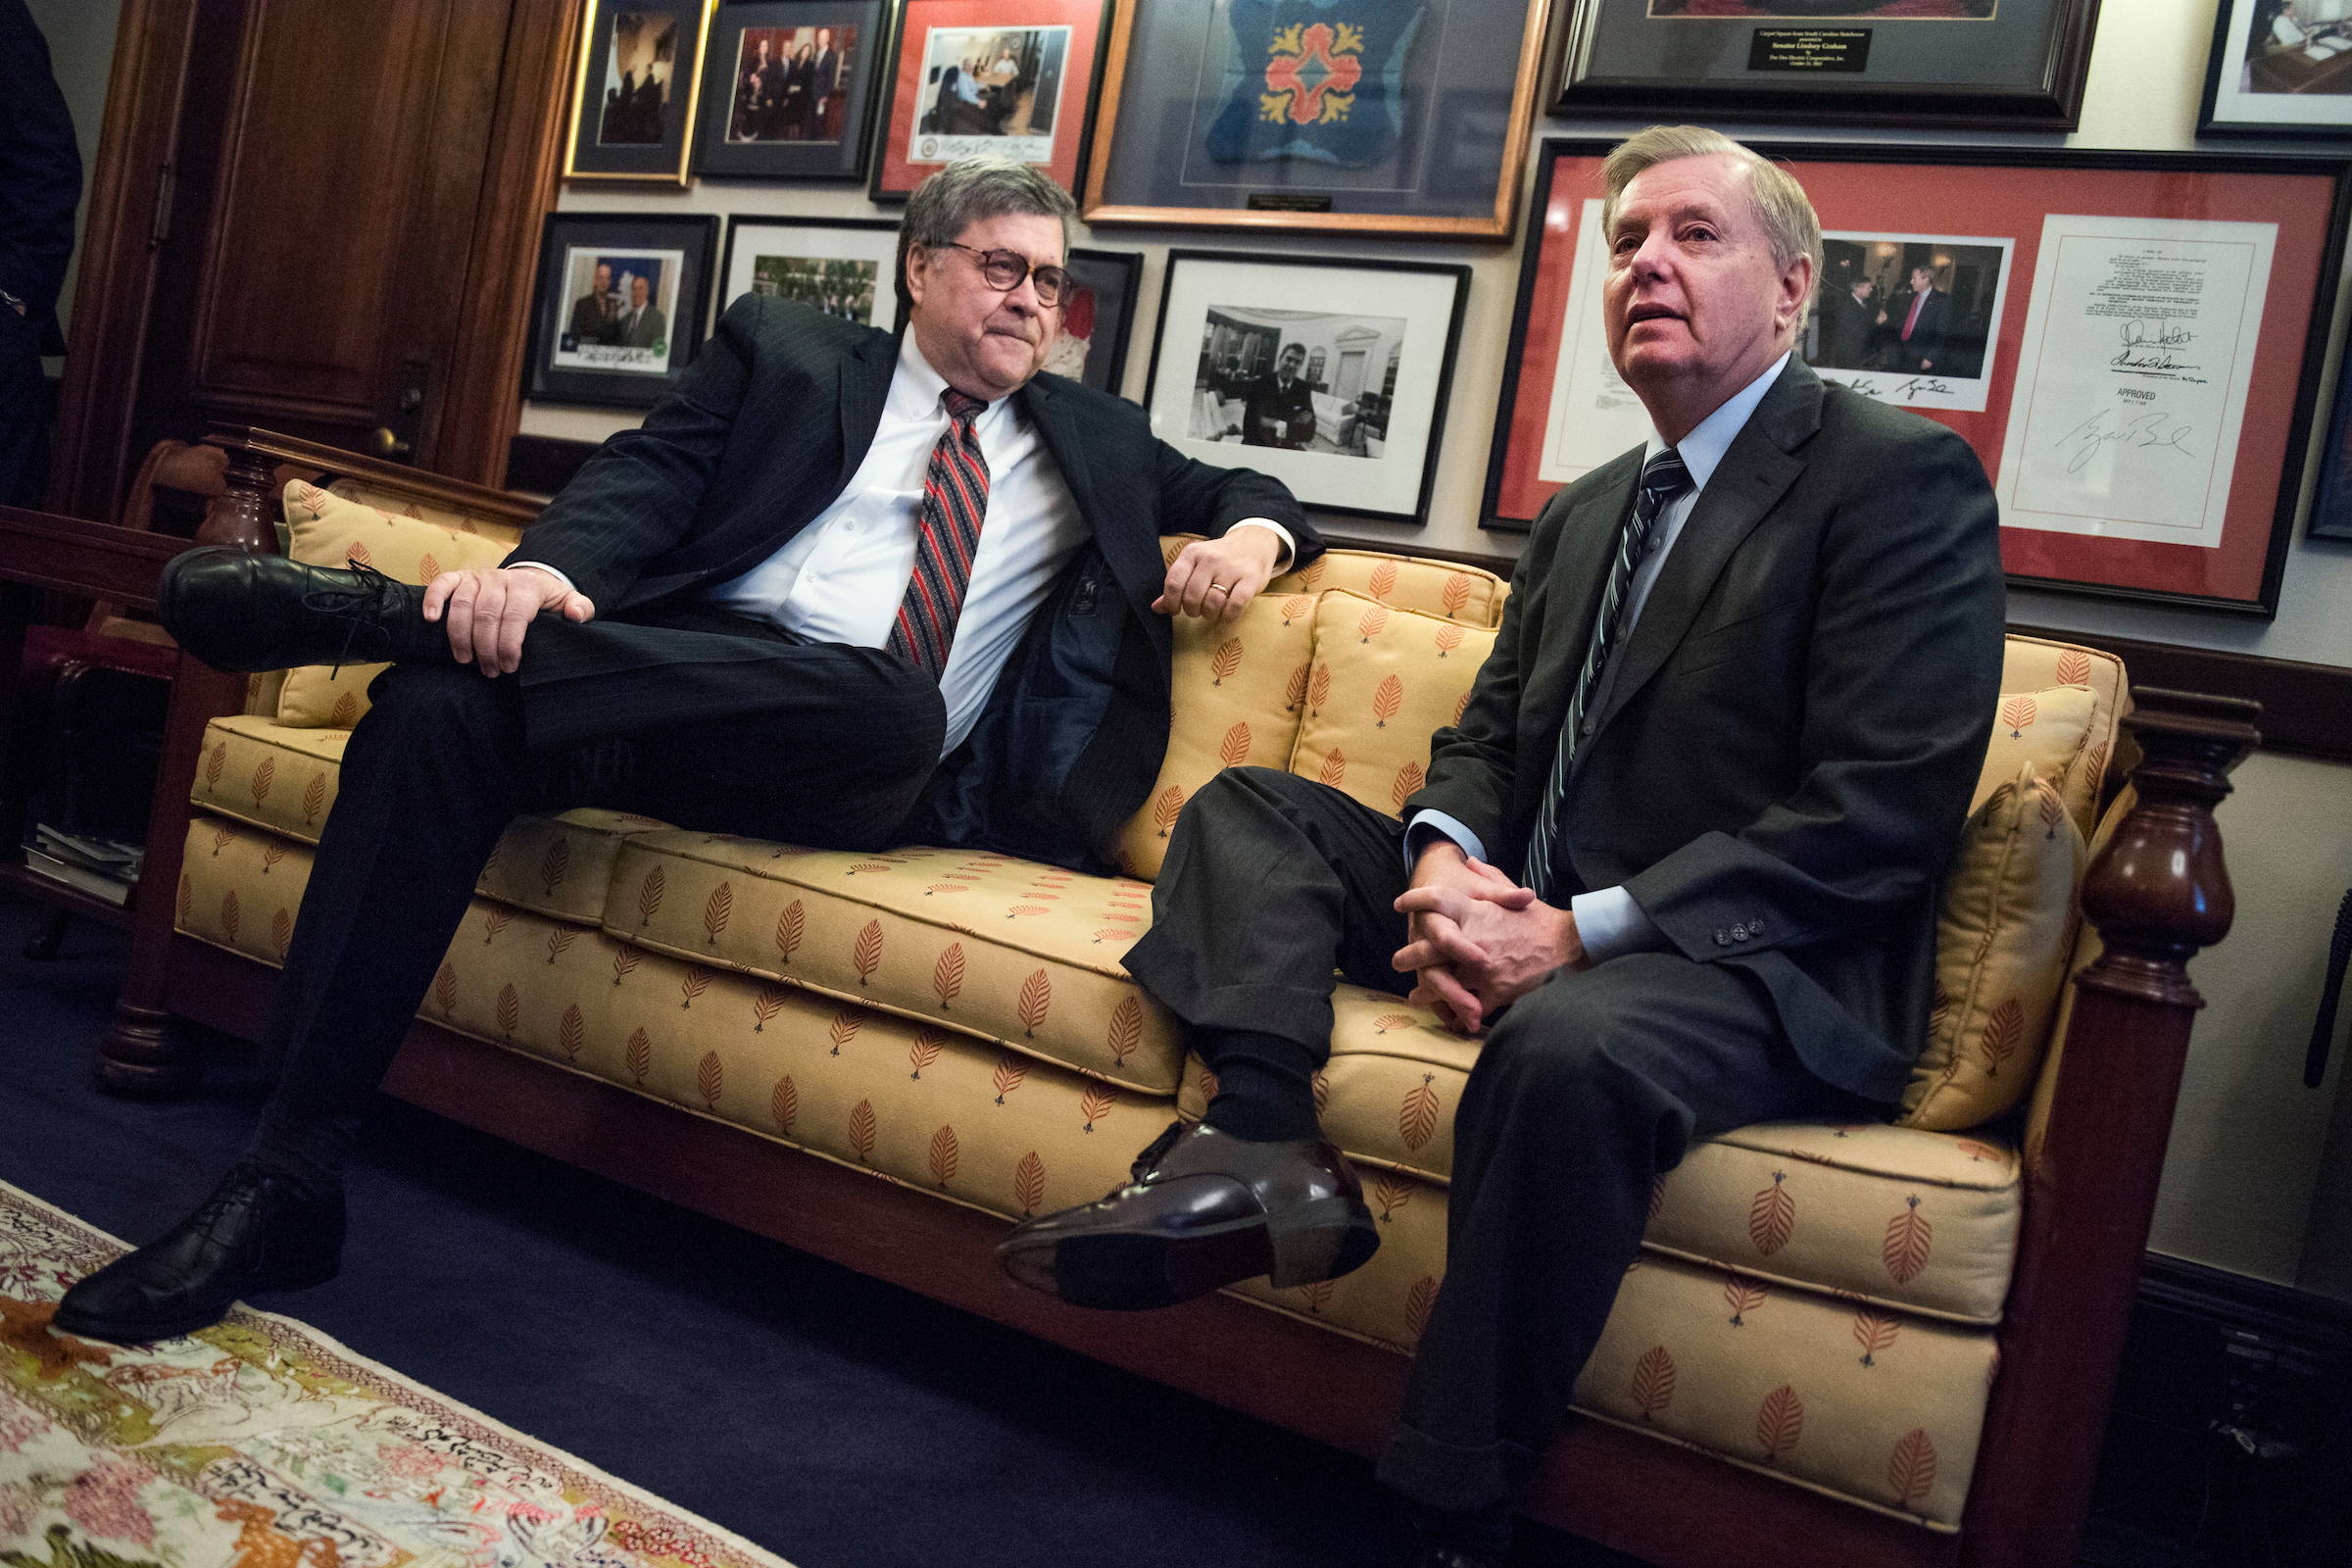 UNITED STATES - JANUARY 09: William Barr, left, nominee for attorney general, meets with Sen. Lindsey Graham, R-S.C., in Russell Building on January 9, 2019. (Photo By Tom Williams/CQ Roll Call)